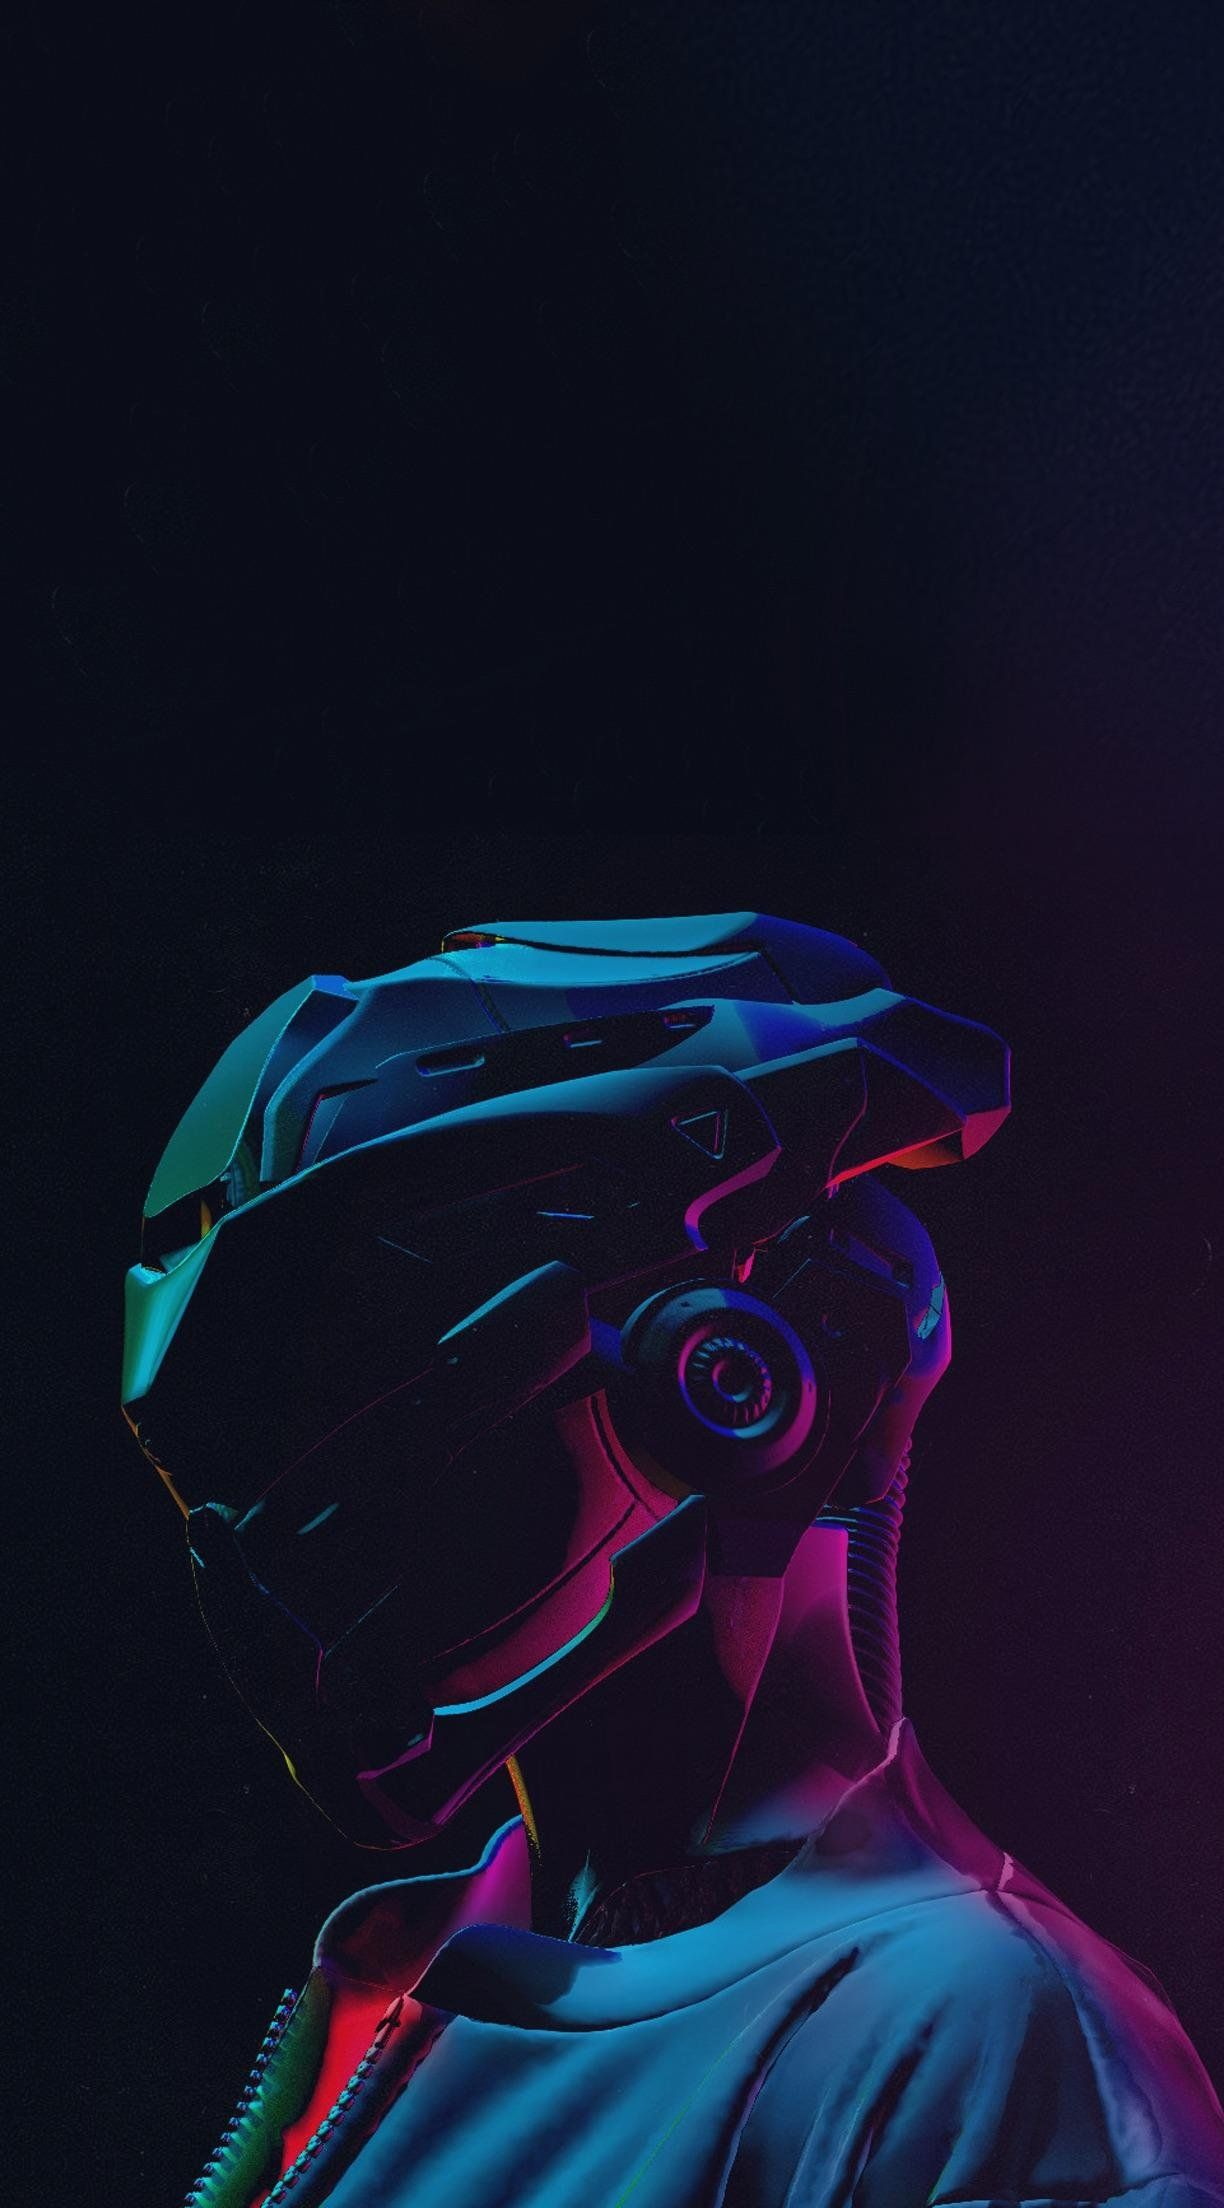 Cyberpunk Style Wallpaper I Did For Iphone Cyberpunkgame